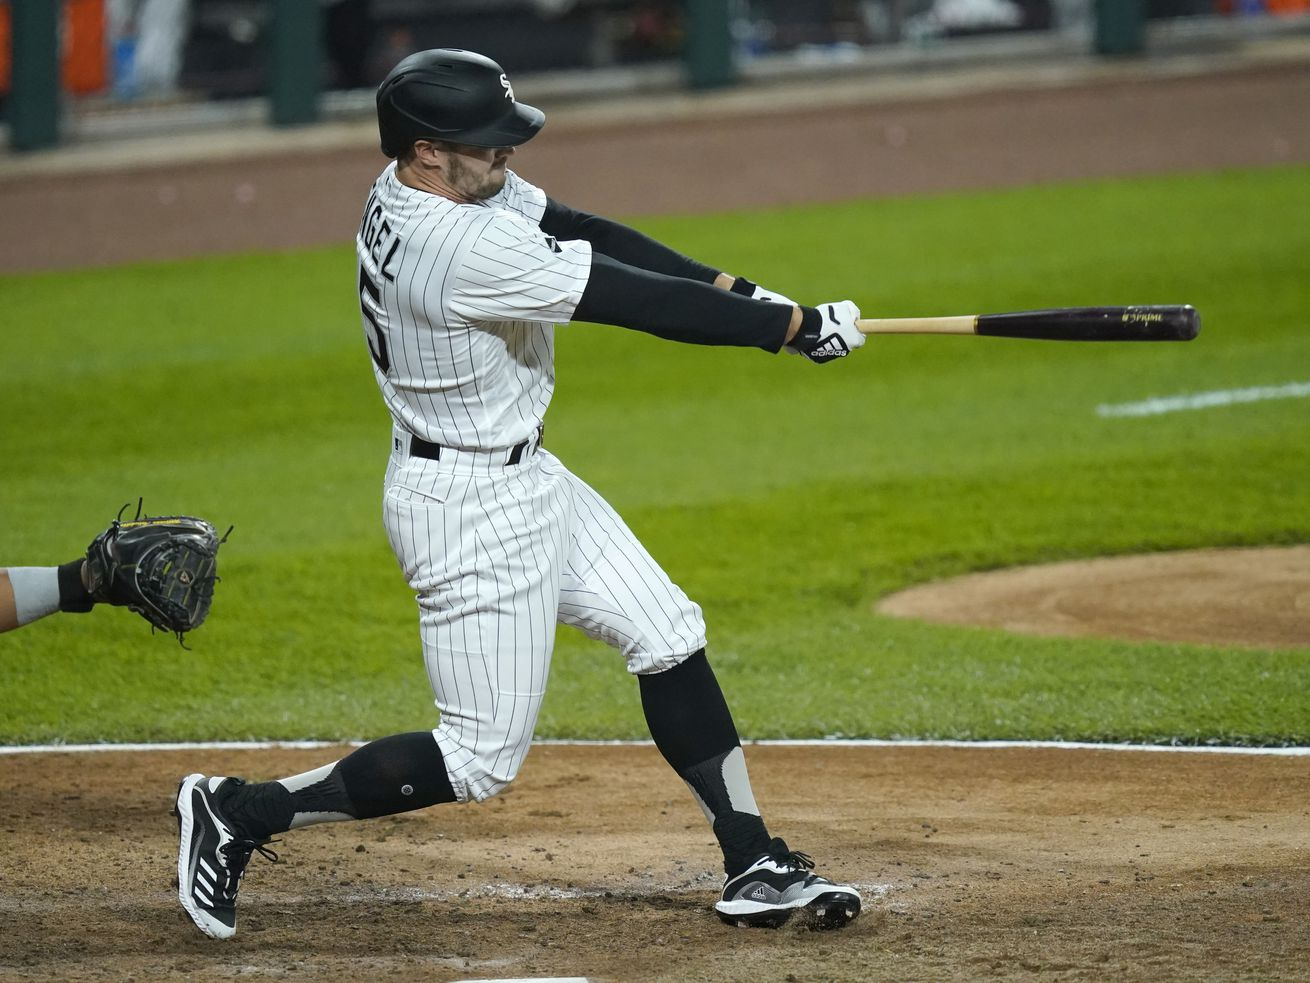 Engel, Anderson RBI in eighth lift White Sox to 3-1 win over Twins